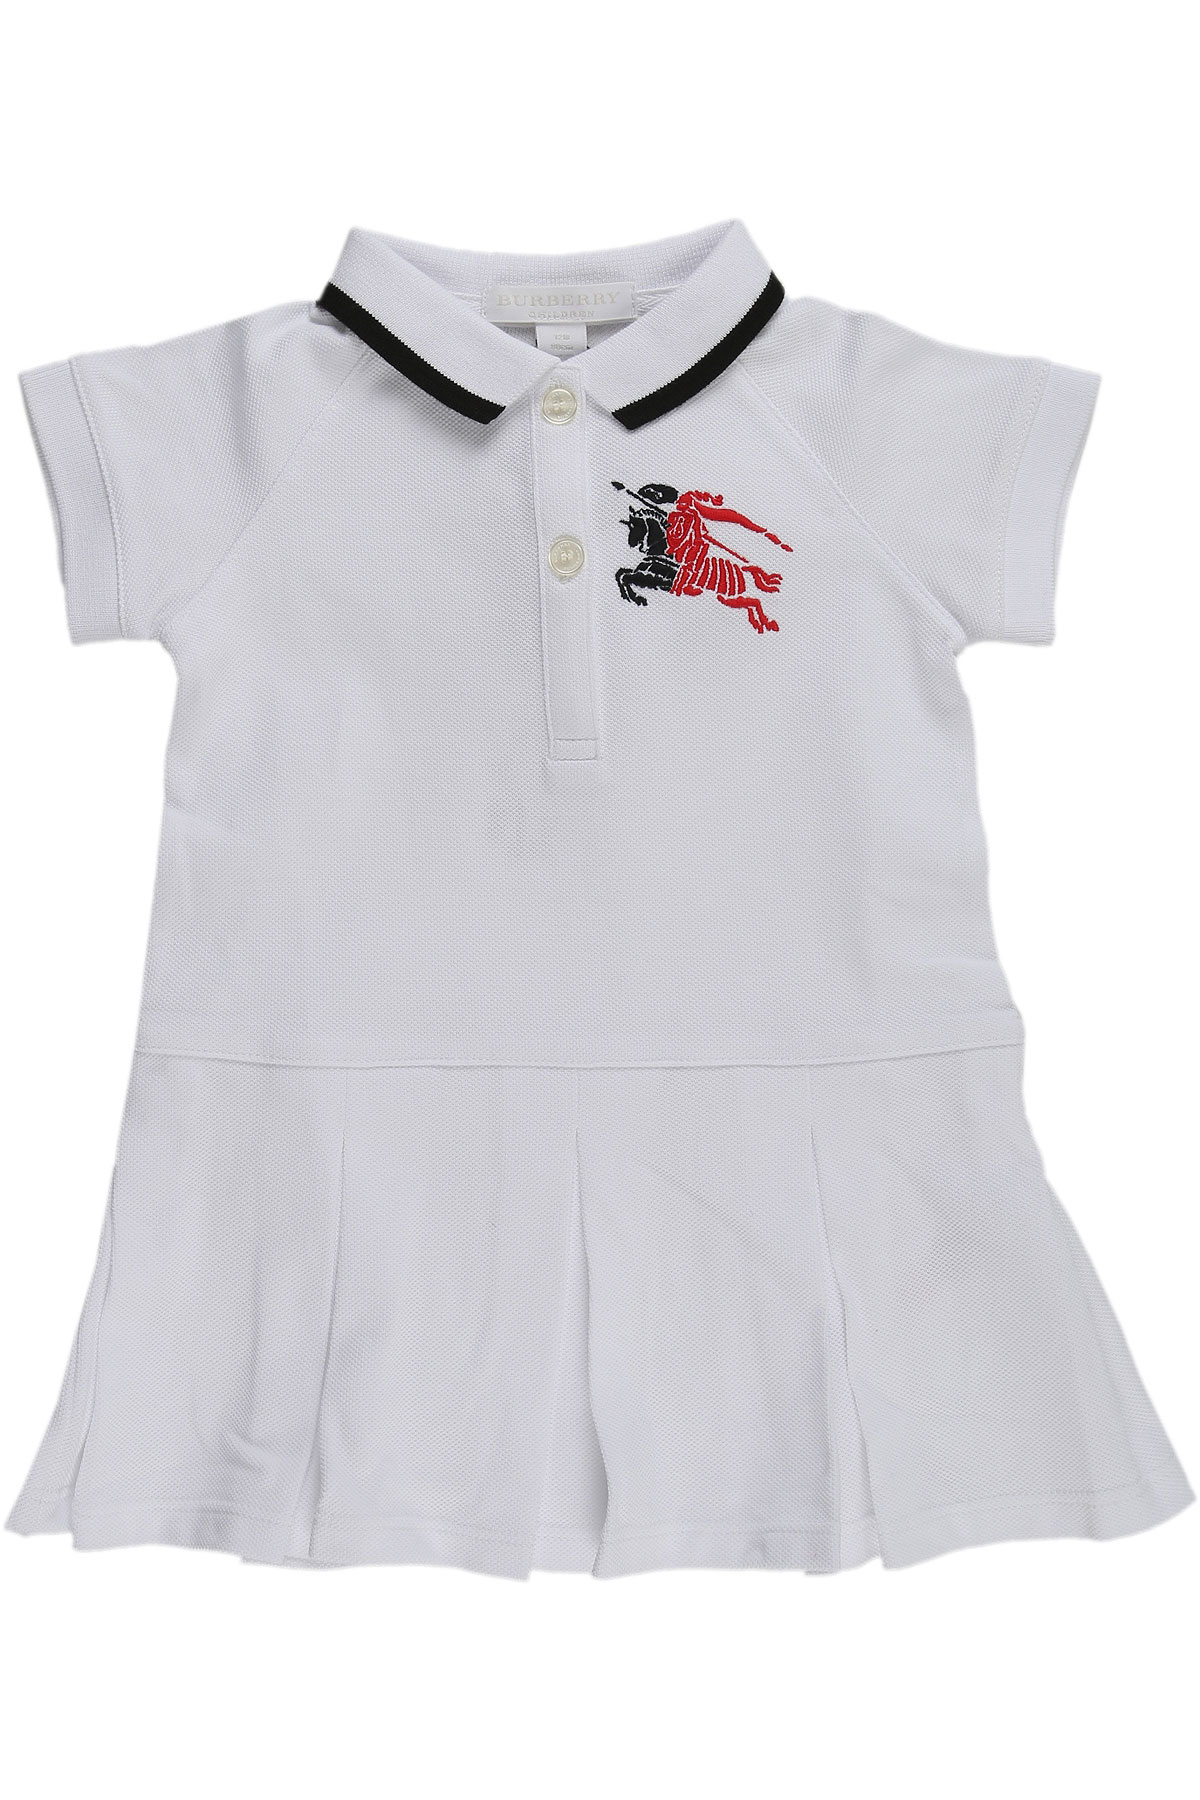 Image of Burberry Baby Dress for Girls, White, Cotton, 2017, 12M 18M 2Y 6M